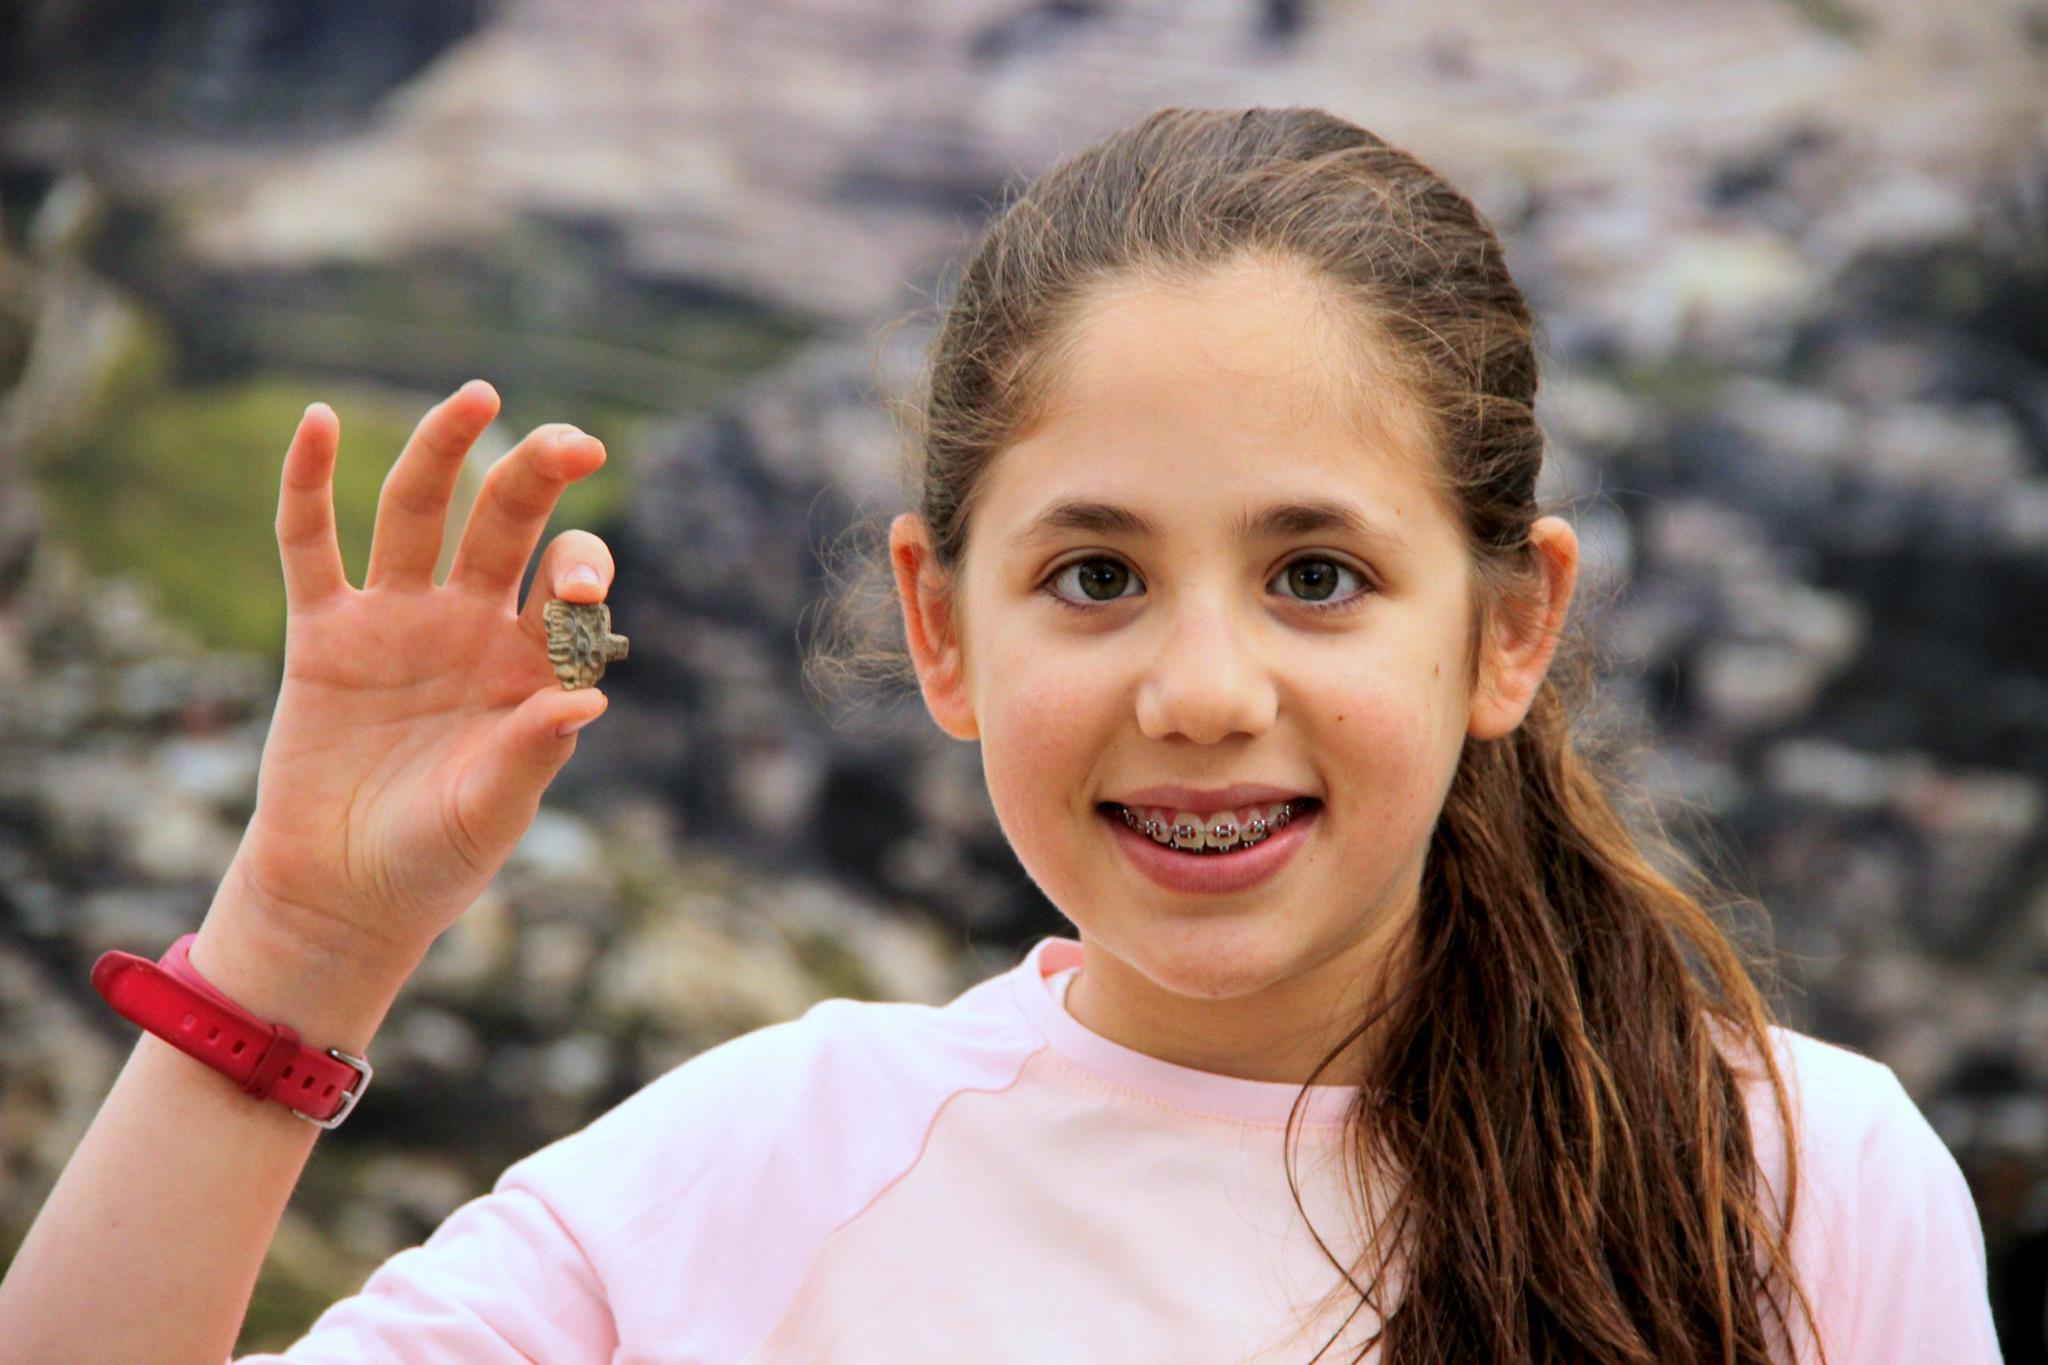 8-year-old girl casually found ancient Egyptian amulet